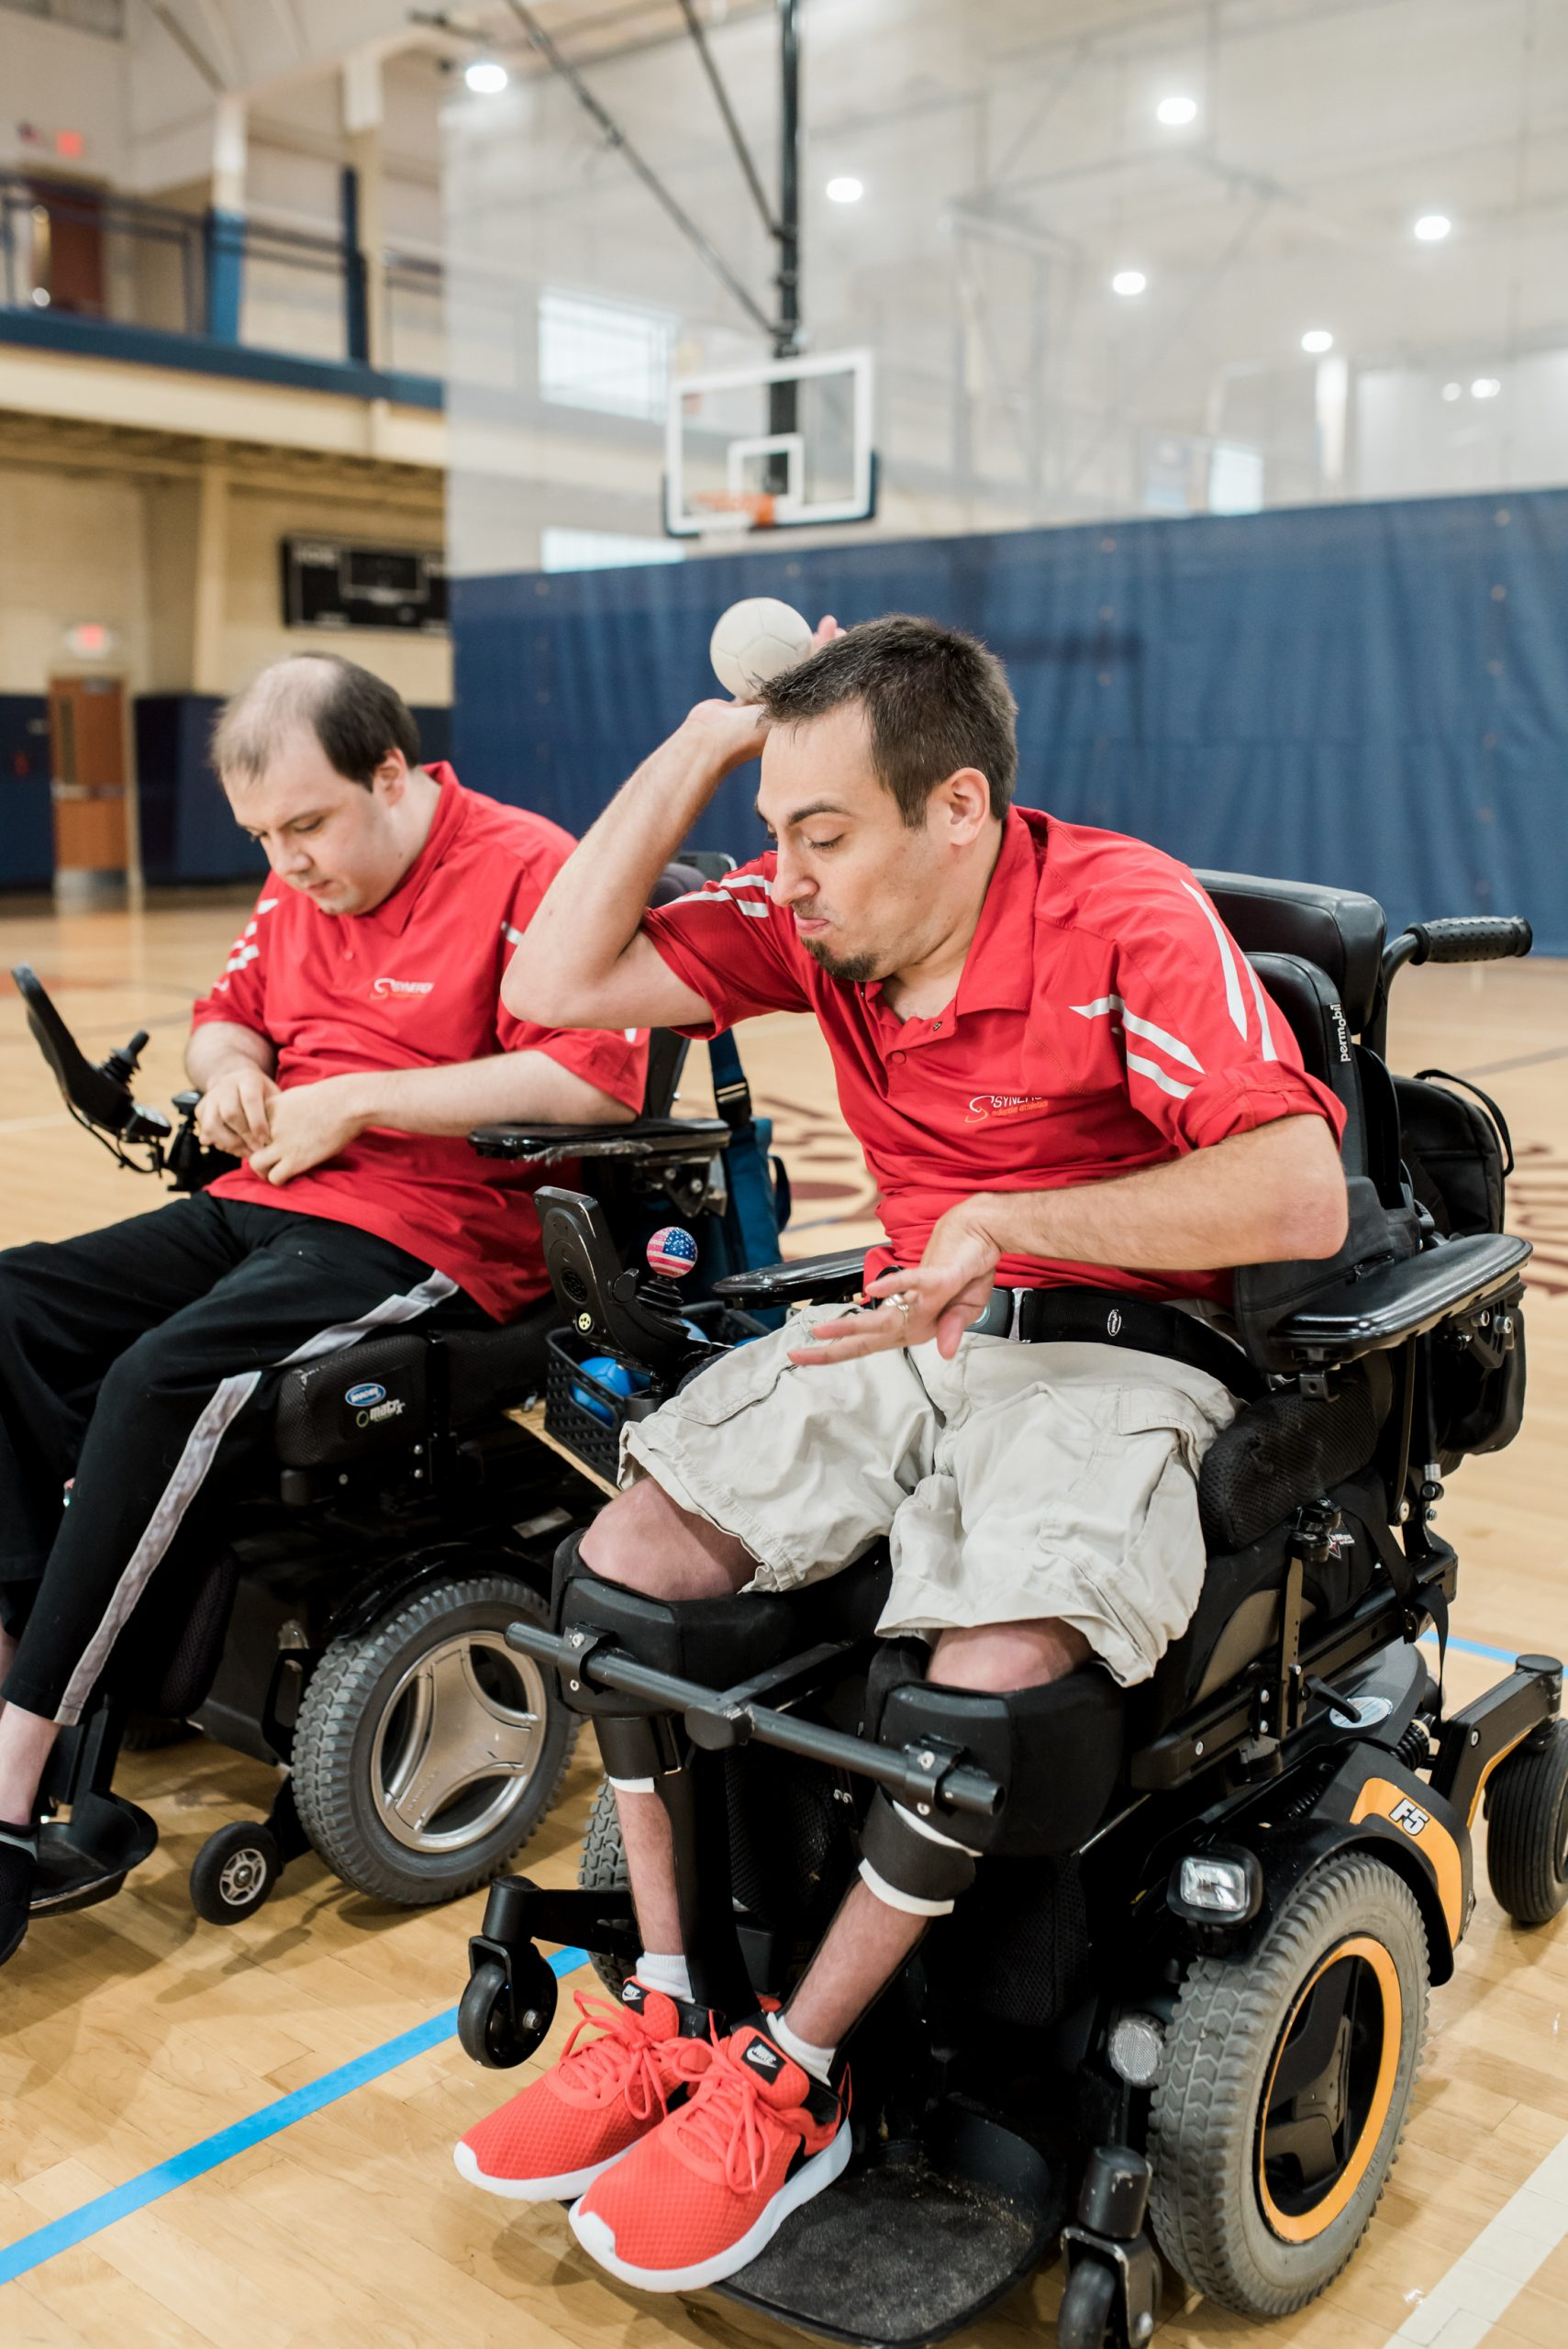 Boccia athlete throwing a boccia ball. Links to programs and services page.